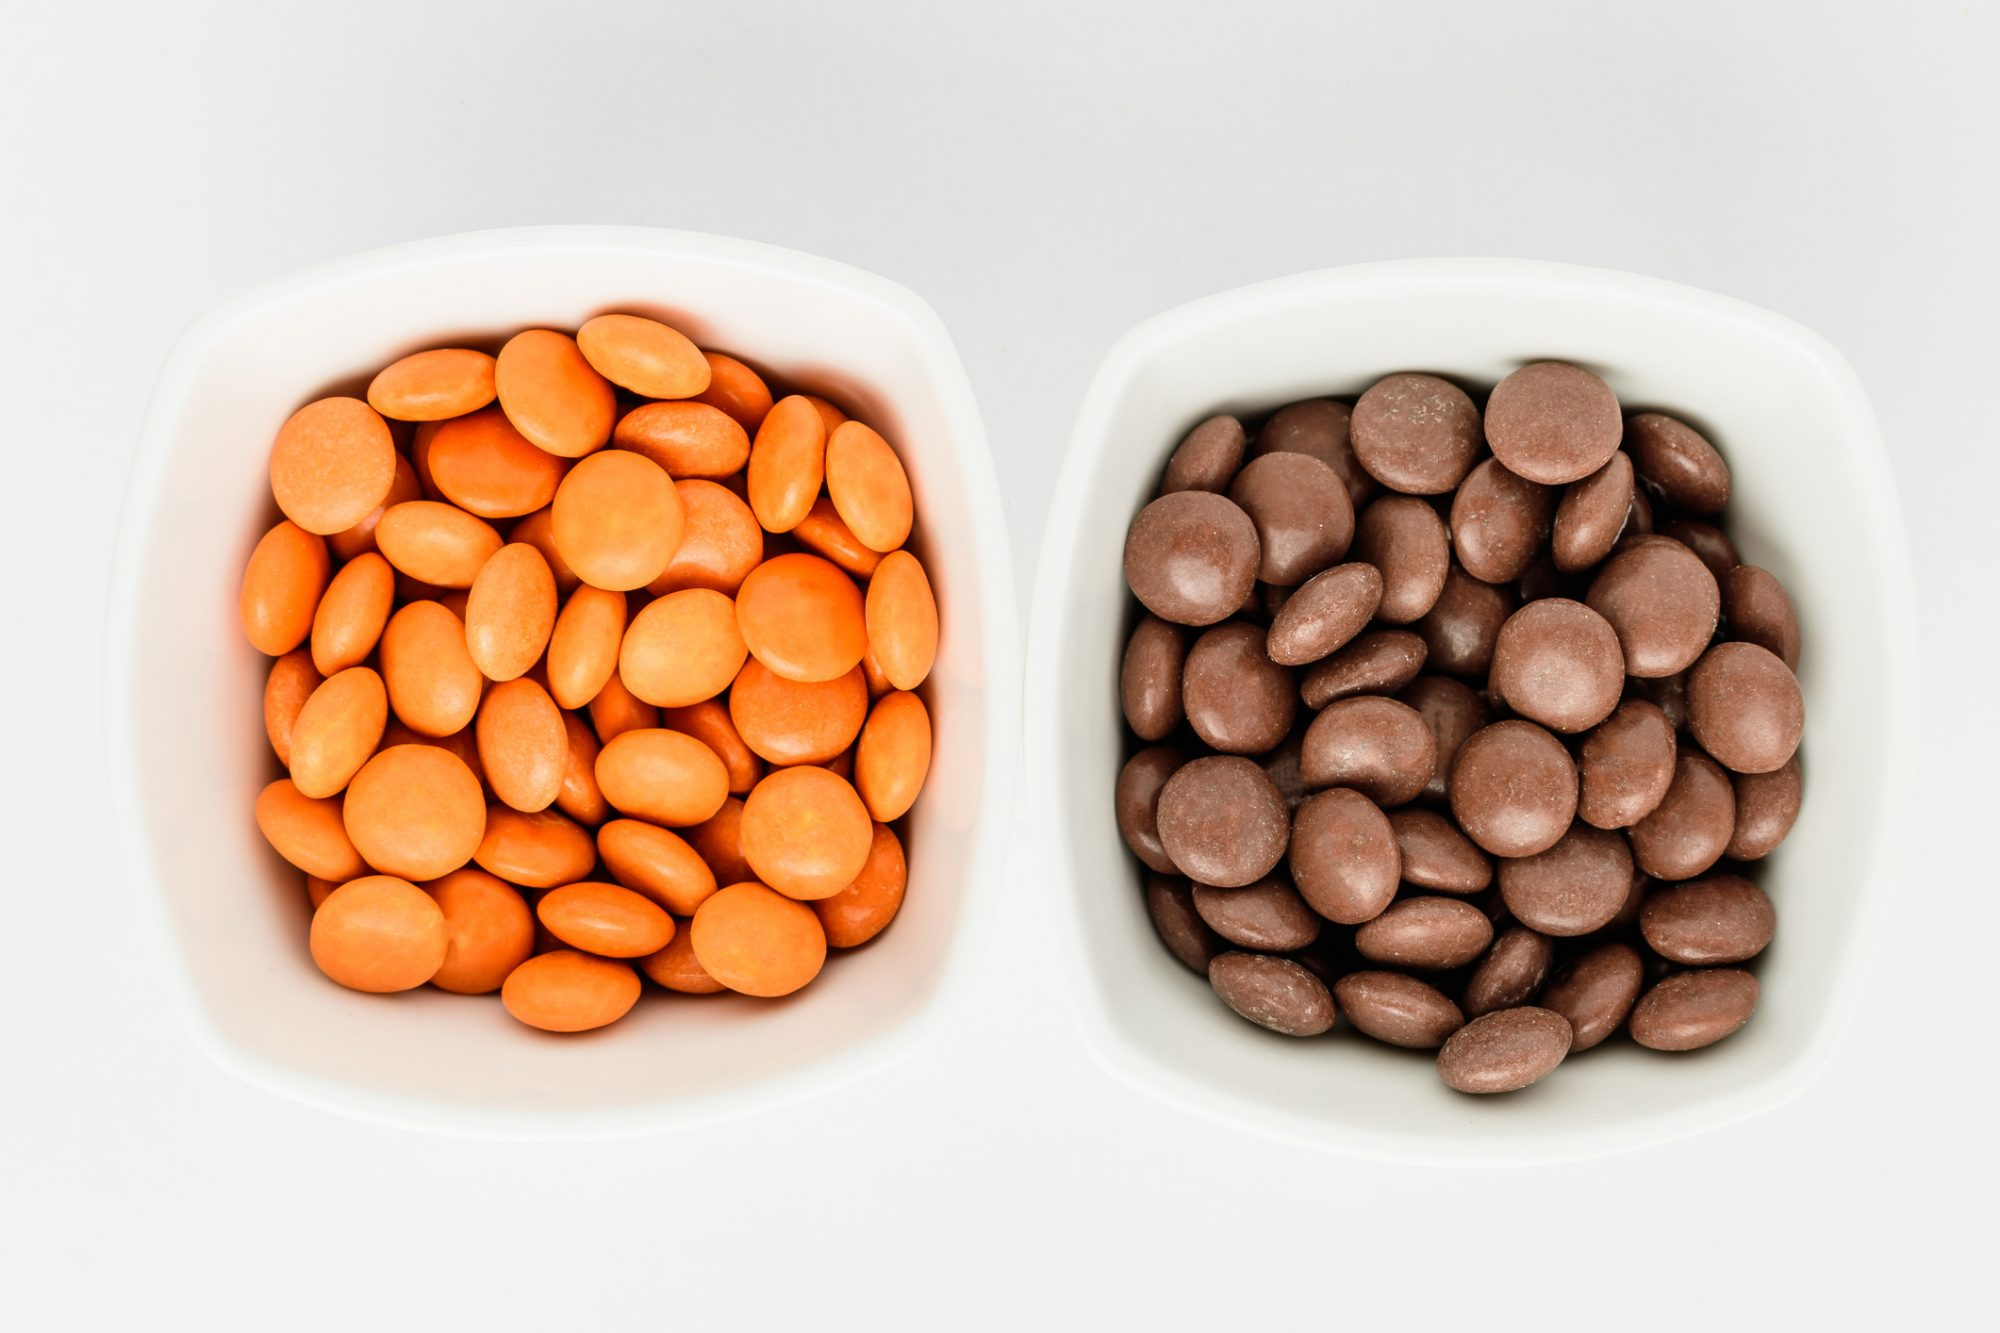 separated orange and brown m&ms in white bowls